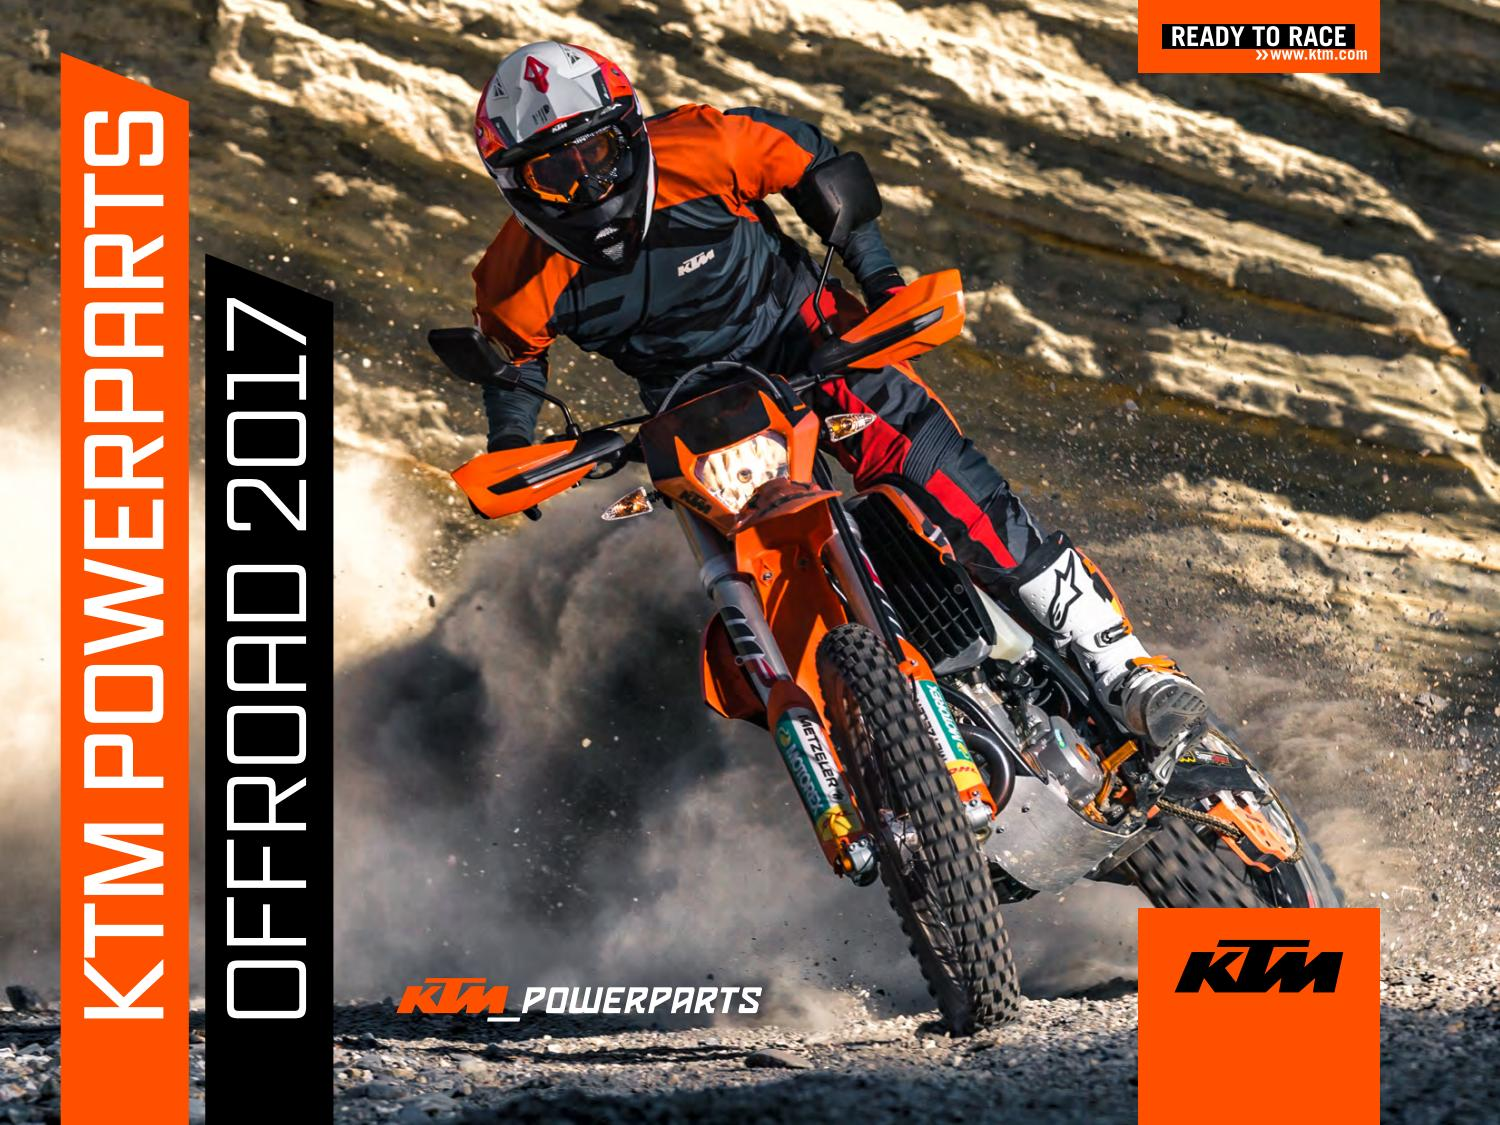 KTM PowerParts Offroad 2017 USA by KTM GROUP - issuu